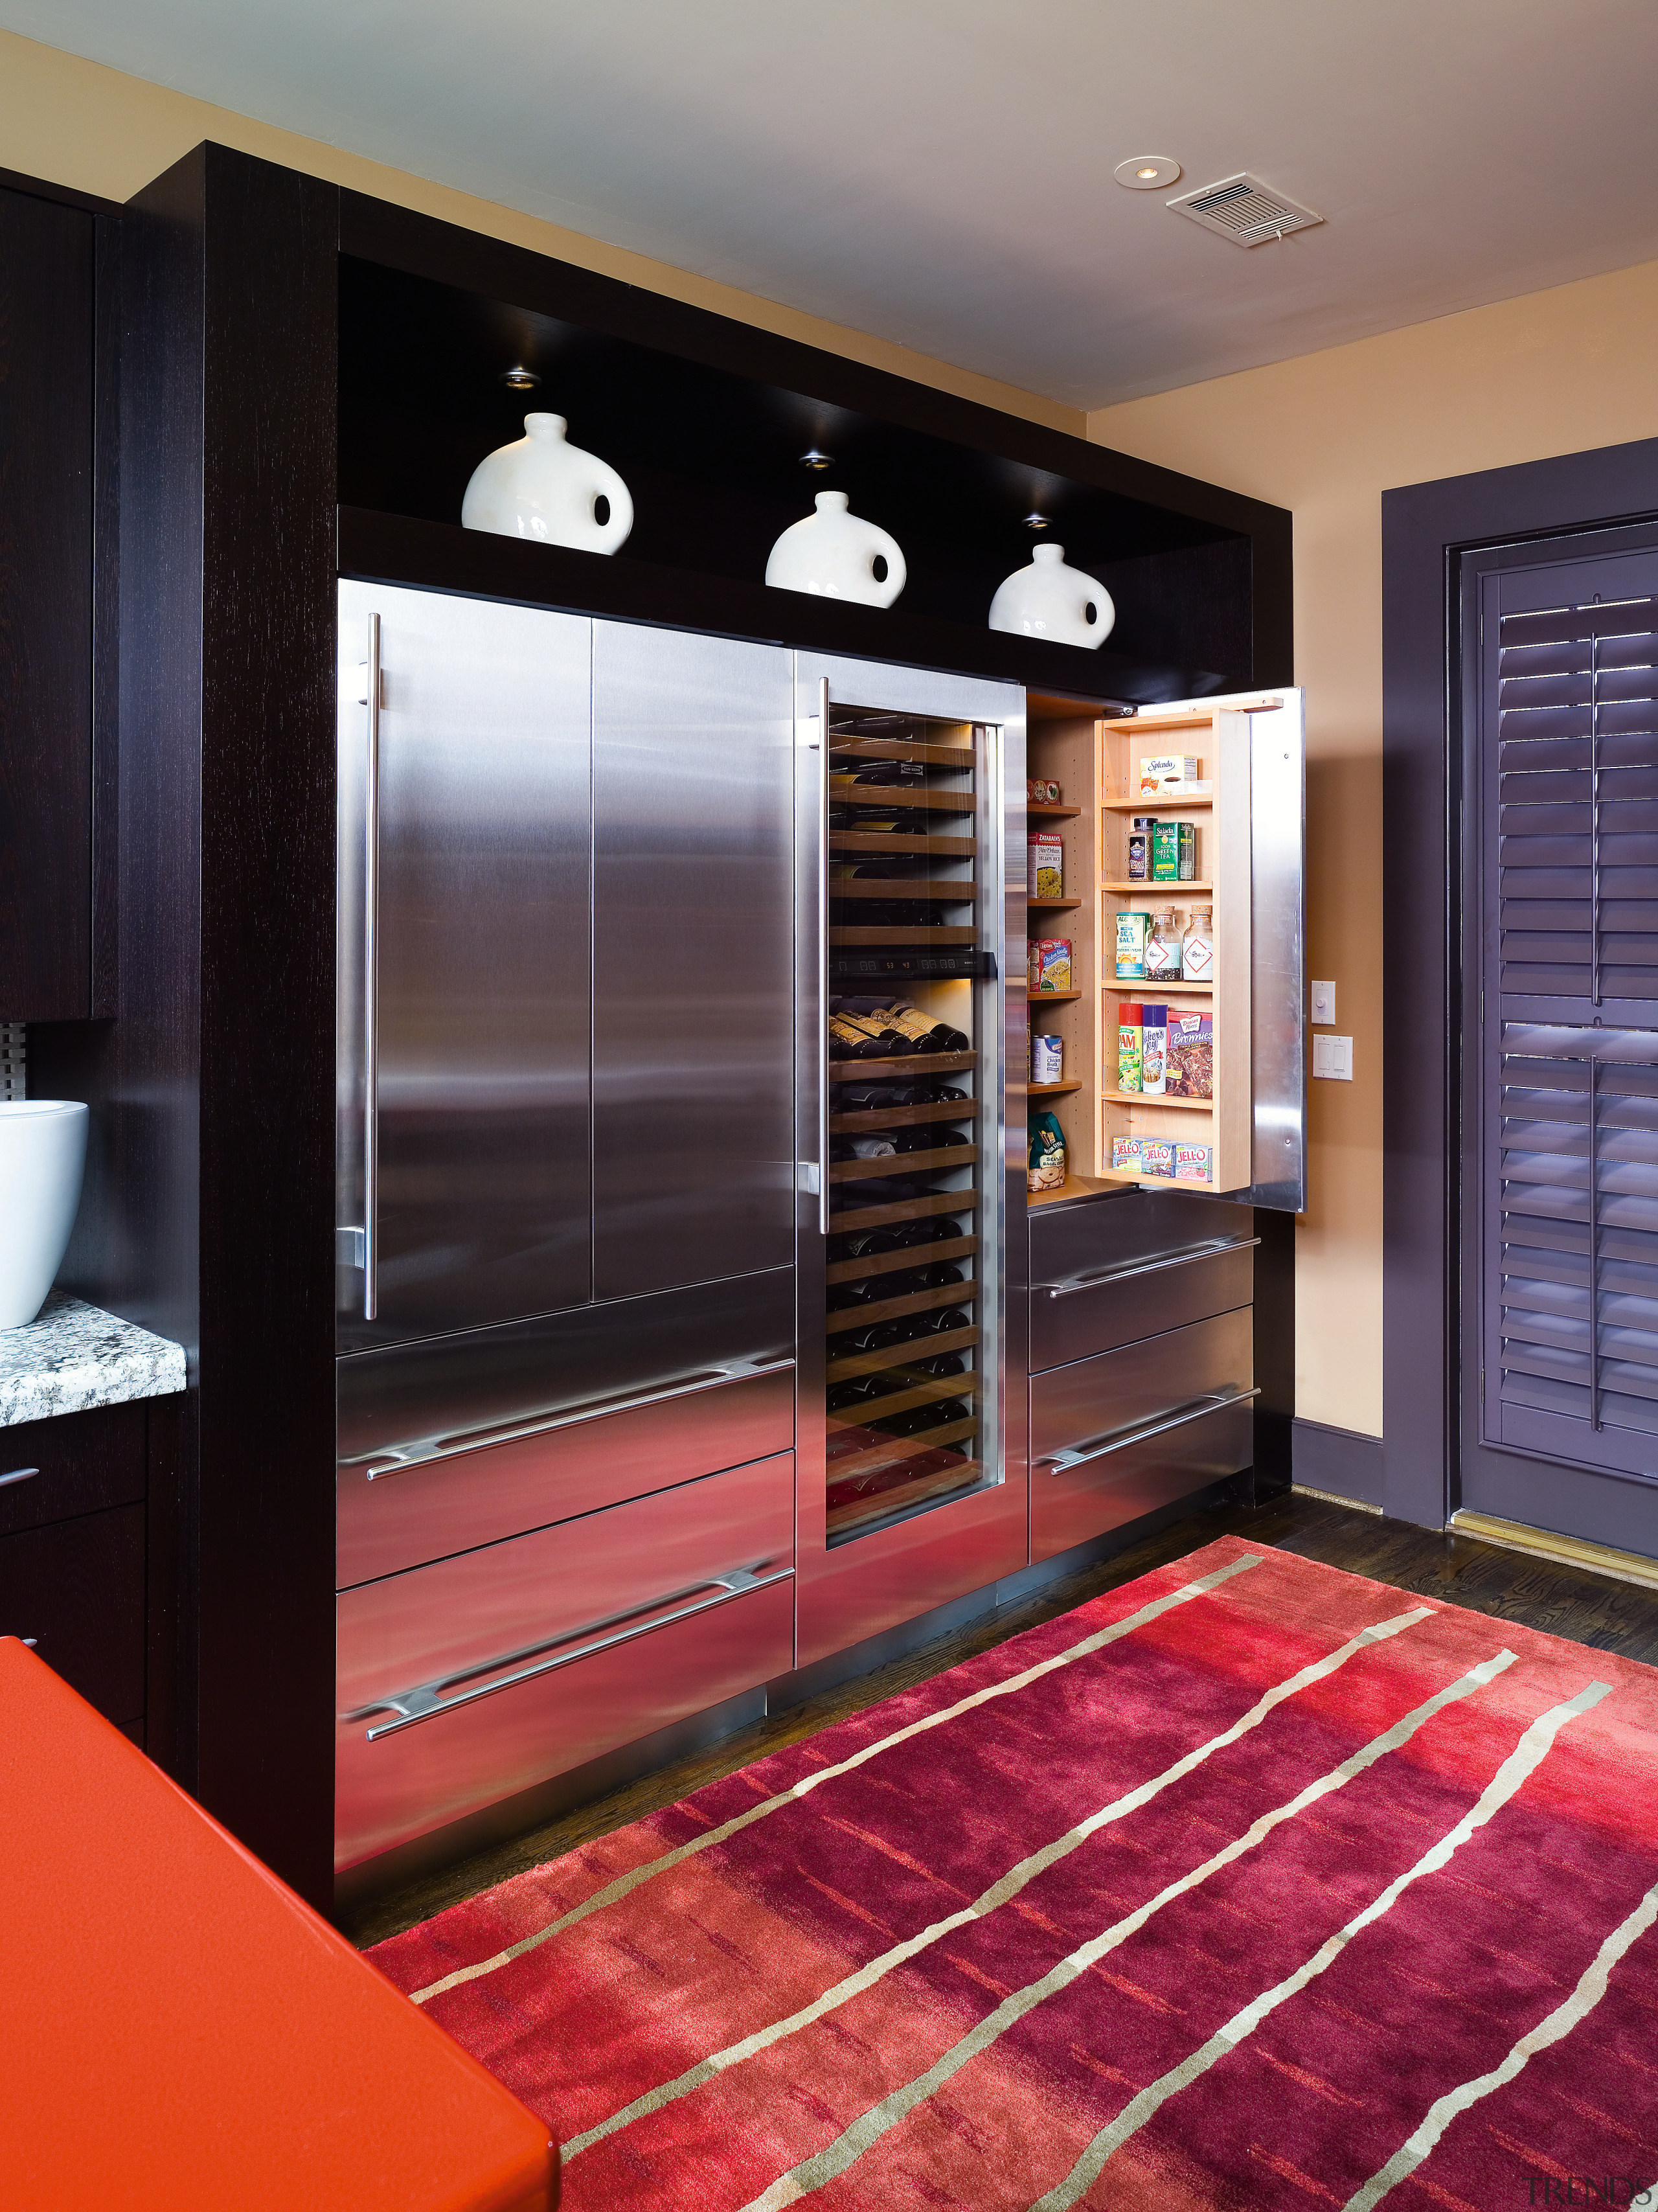 A view of this kitchen featuring black cabinetry, flooring, furniture, interior design, kitchen, room, black, red